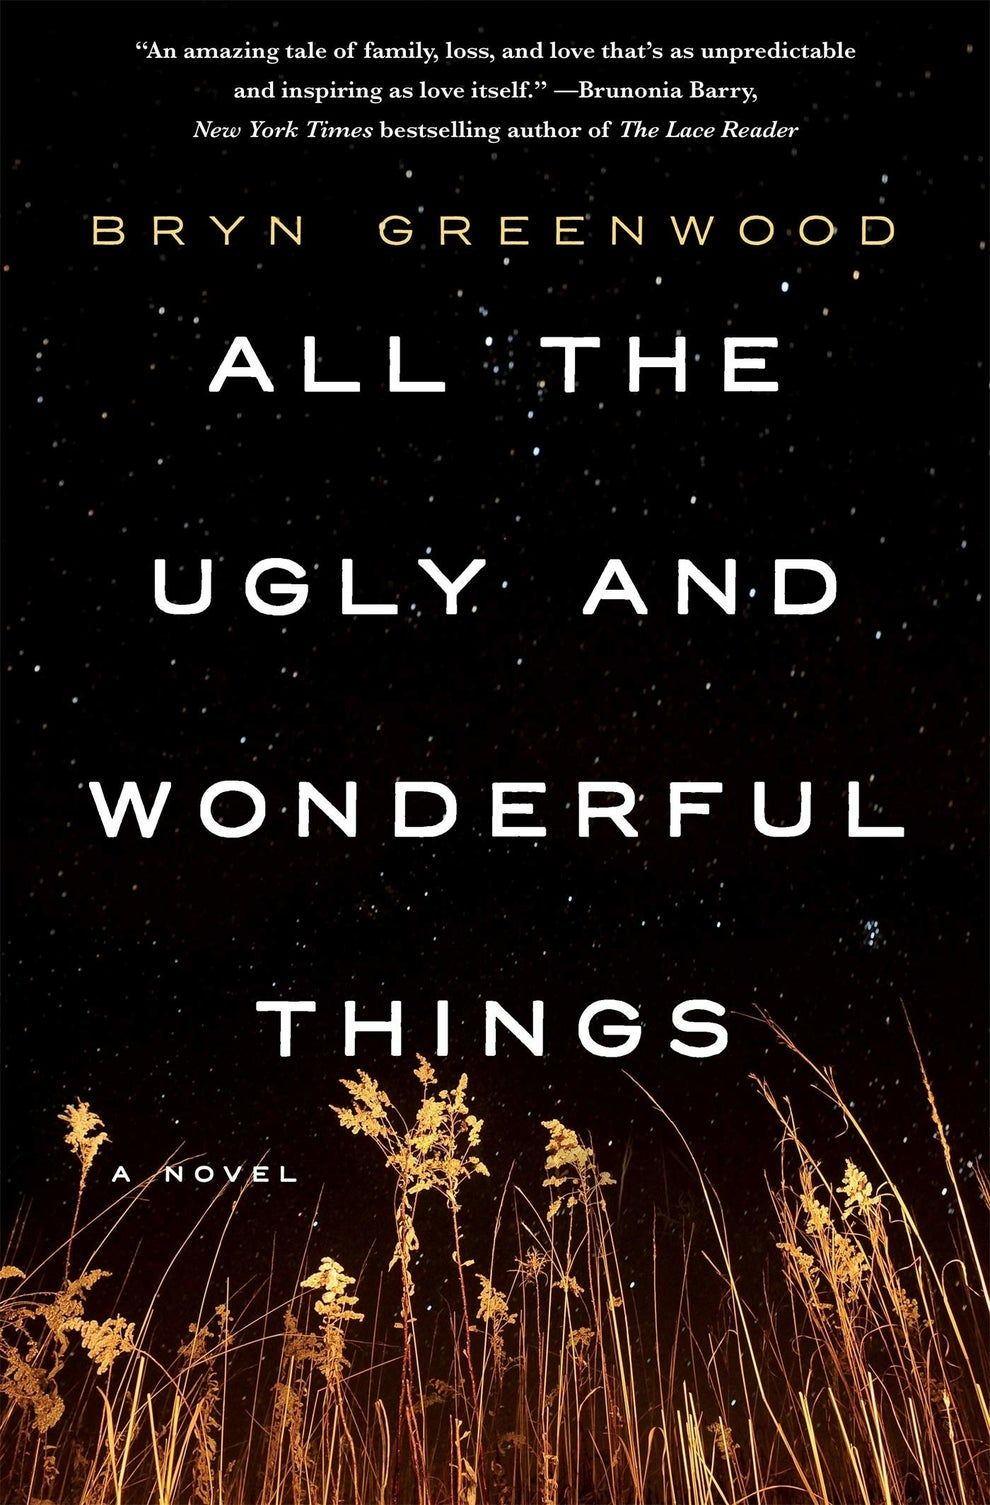 All the Ugly and Wonderful Things by Bryn Greenwood 20 Books That Will Stay With You Long After You Read Them